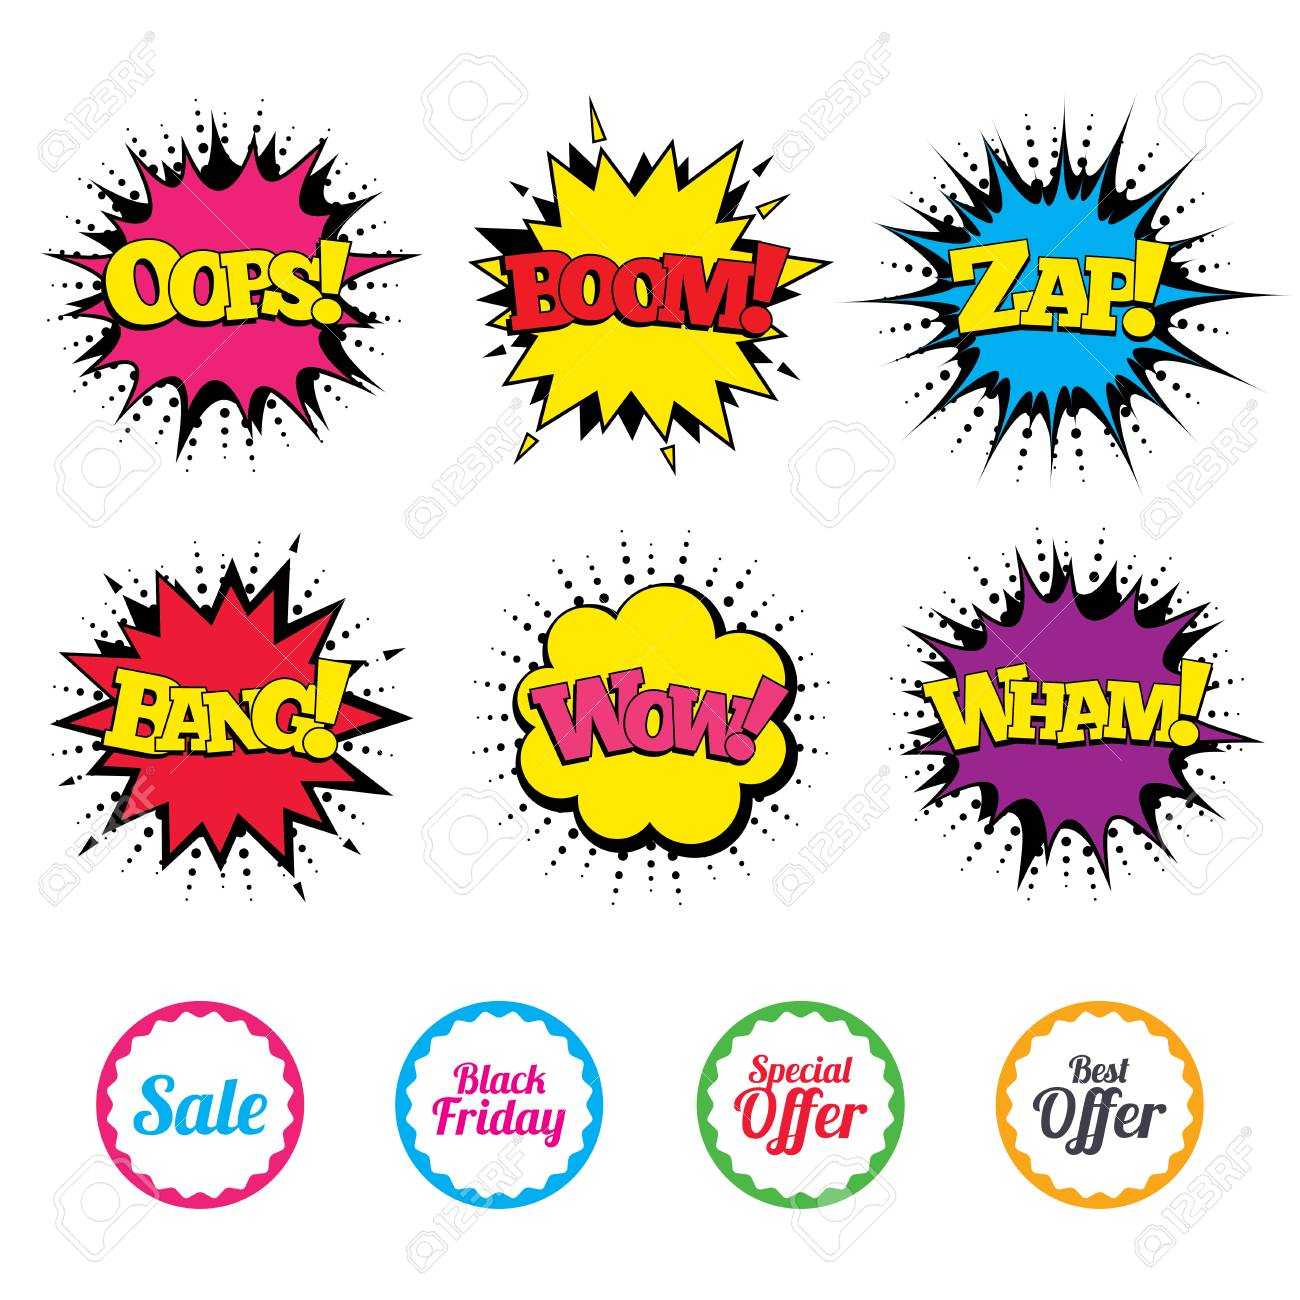 Comic Wow, Oops, Boom and Wham sound effects  Sale icons  Best